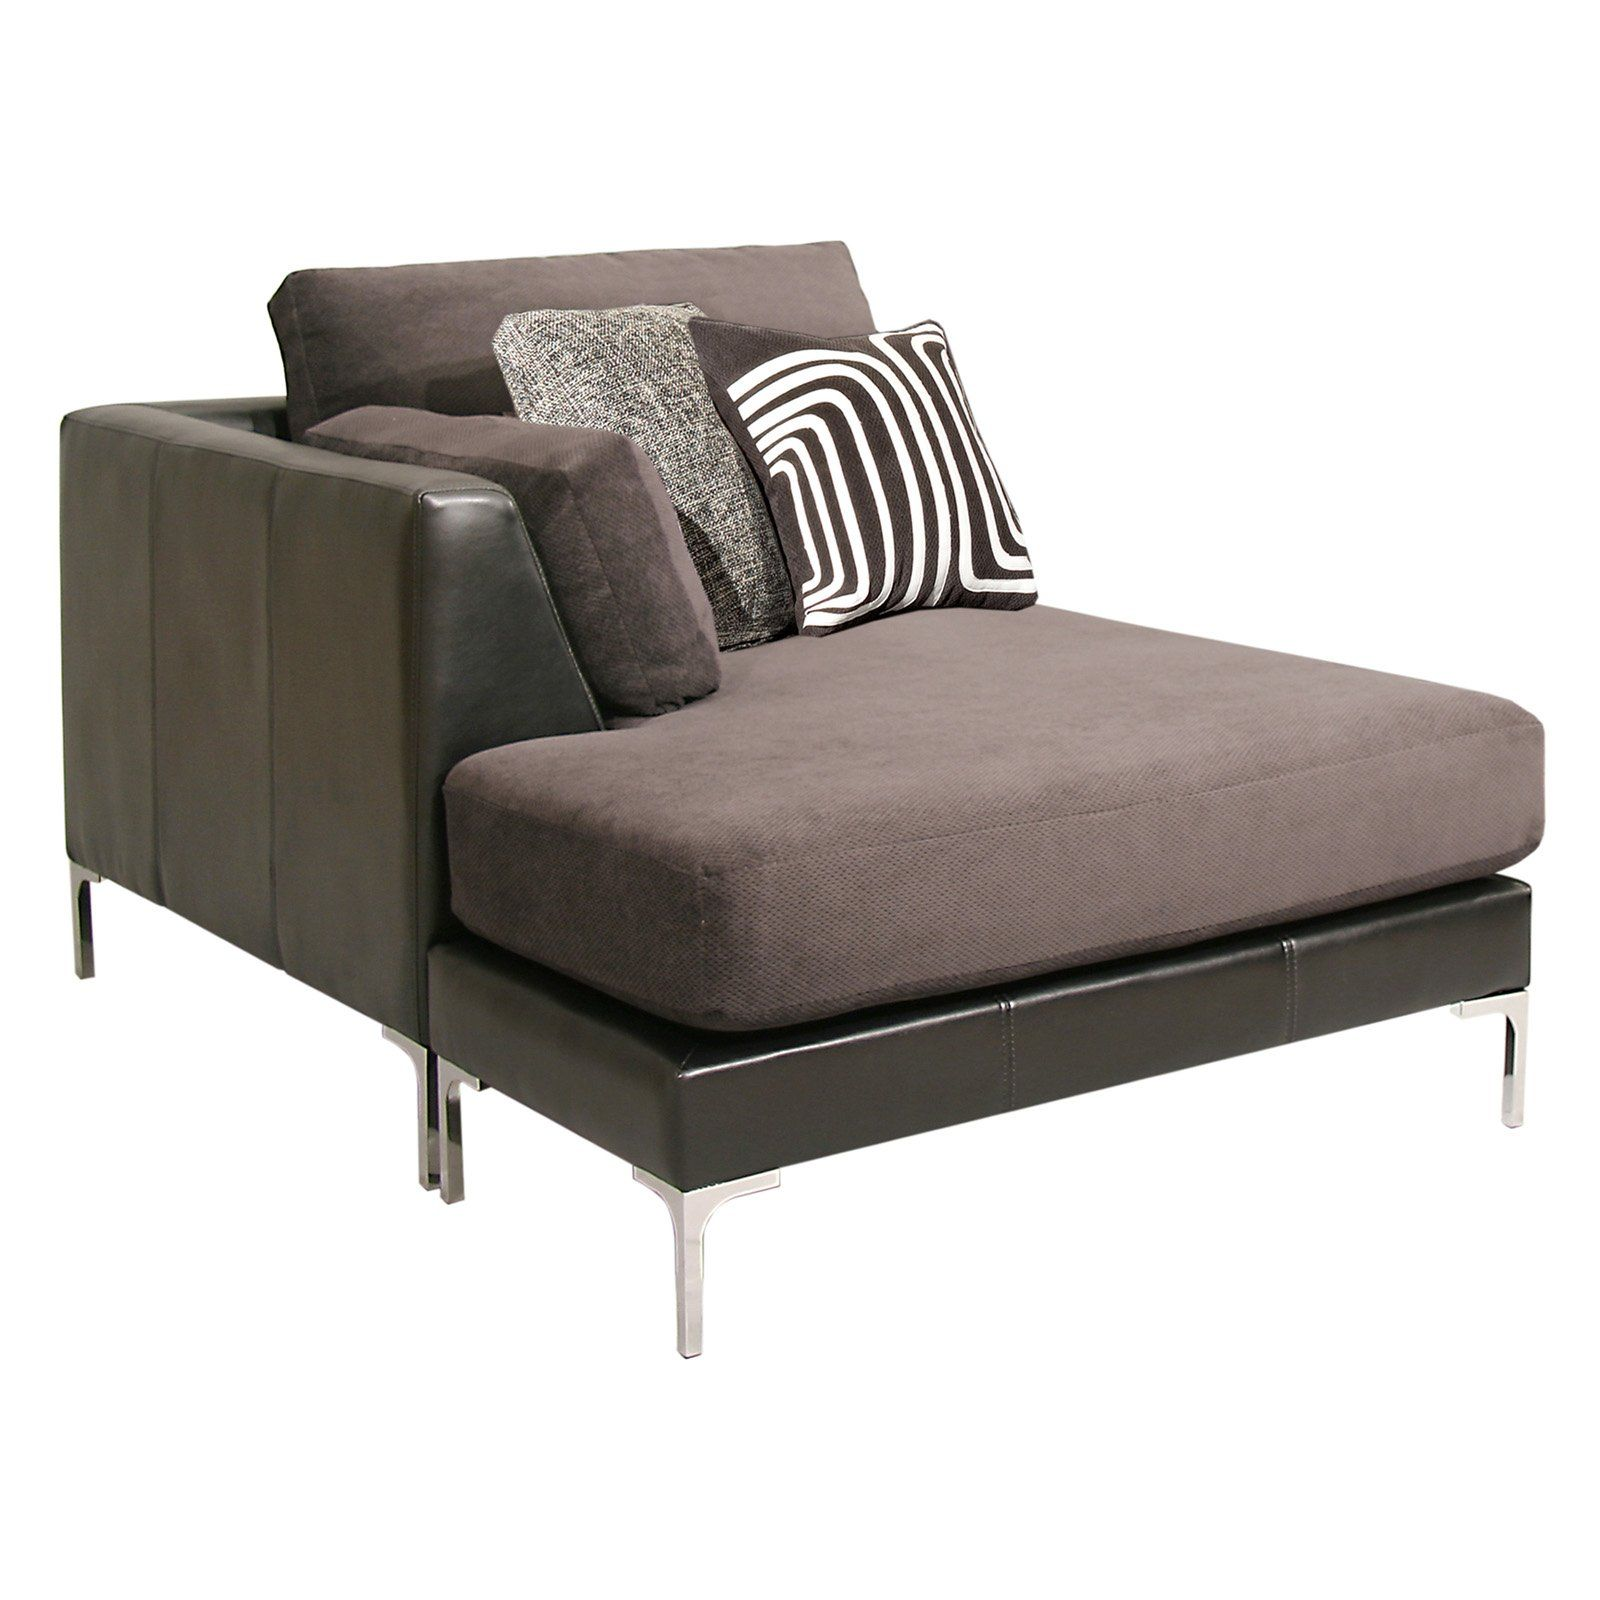 Fairmont contemporary 1 arm chaise chaise lounge indoor